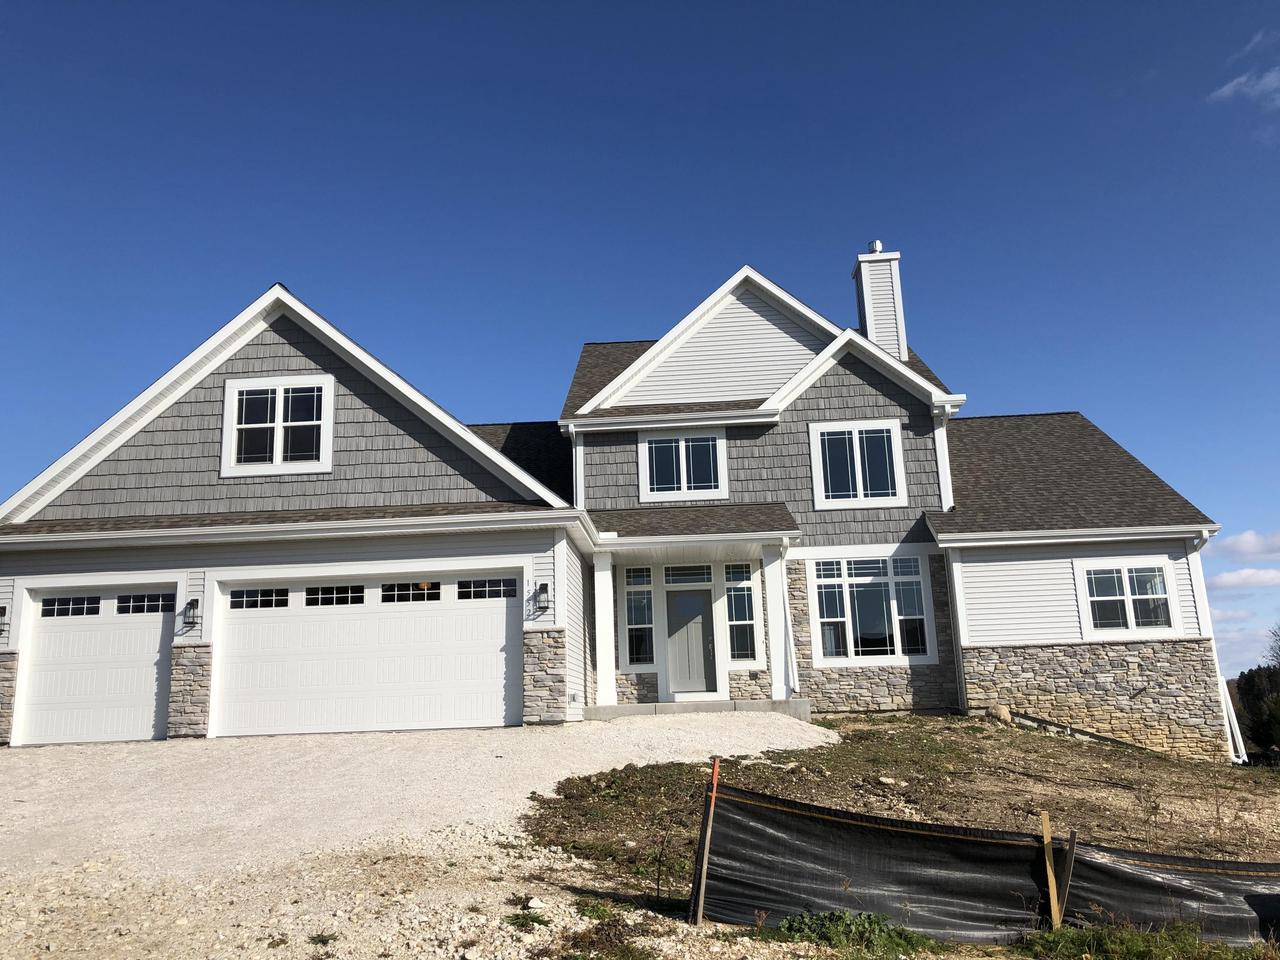 This lovely two story home is on a private cul de sac setting.  Full exposure lower level can add extra square footage to living space.  High end finishes are used throughout this open concept plan!  This home has everything you are looking for!  Seller offers one year home warranty!